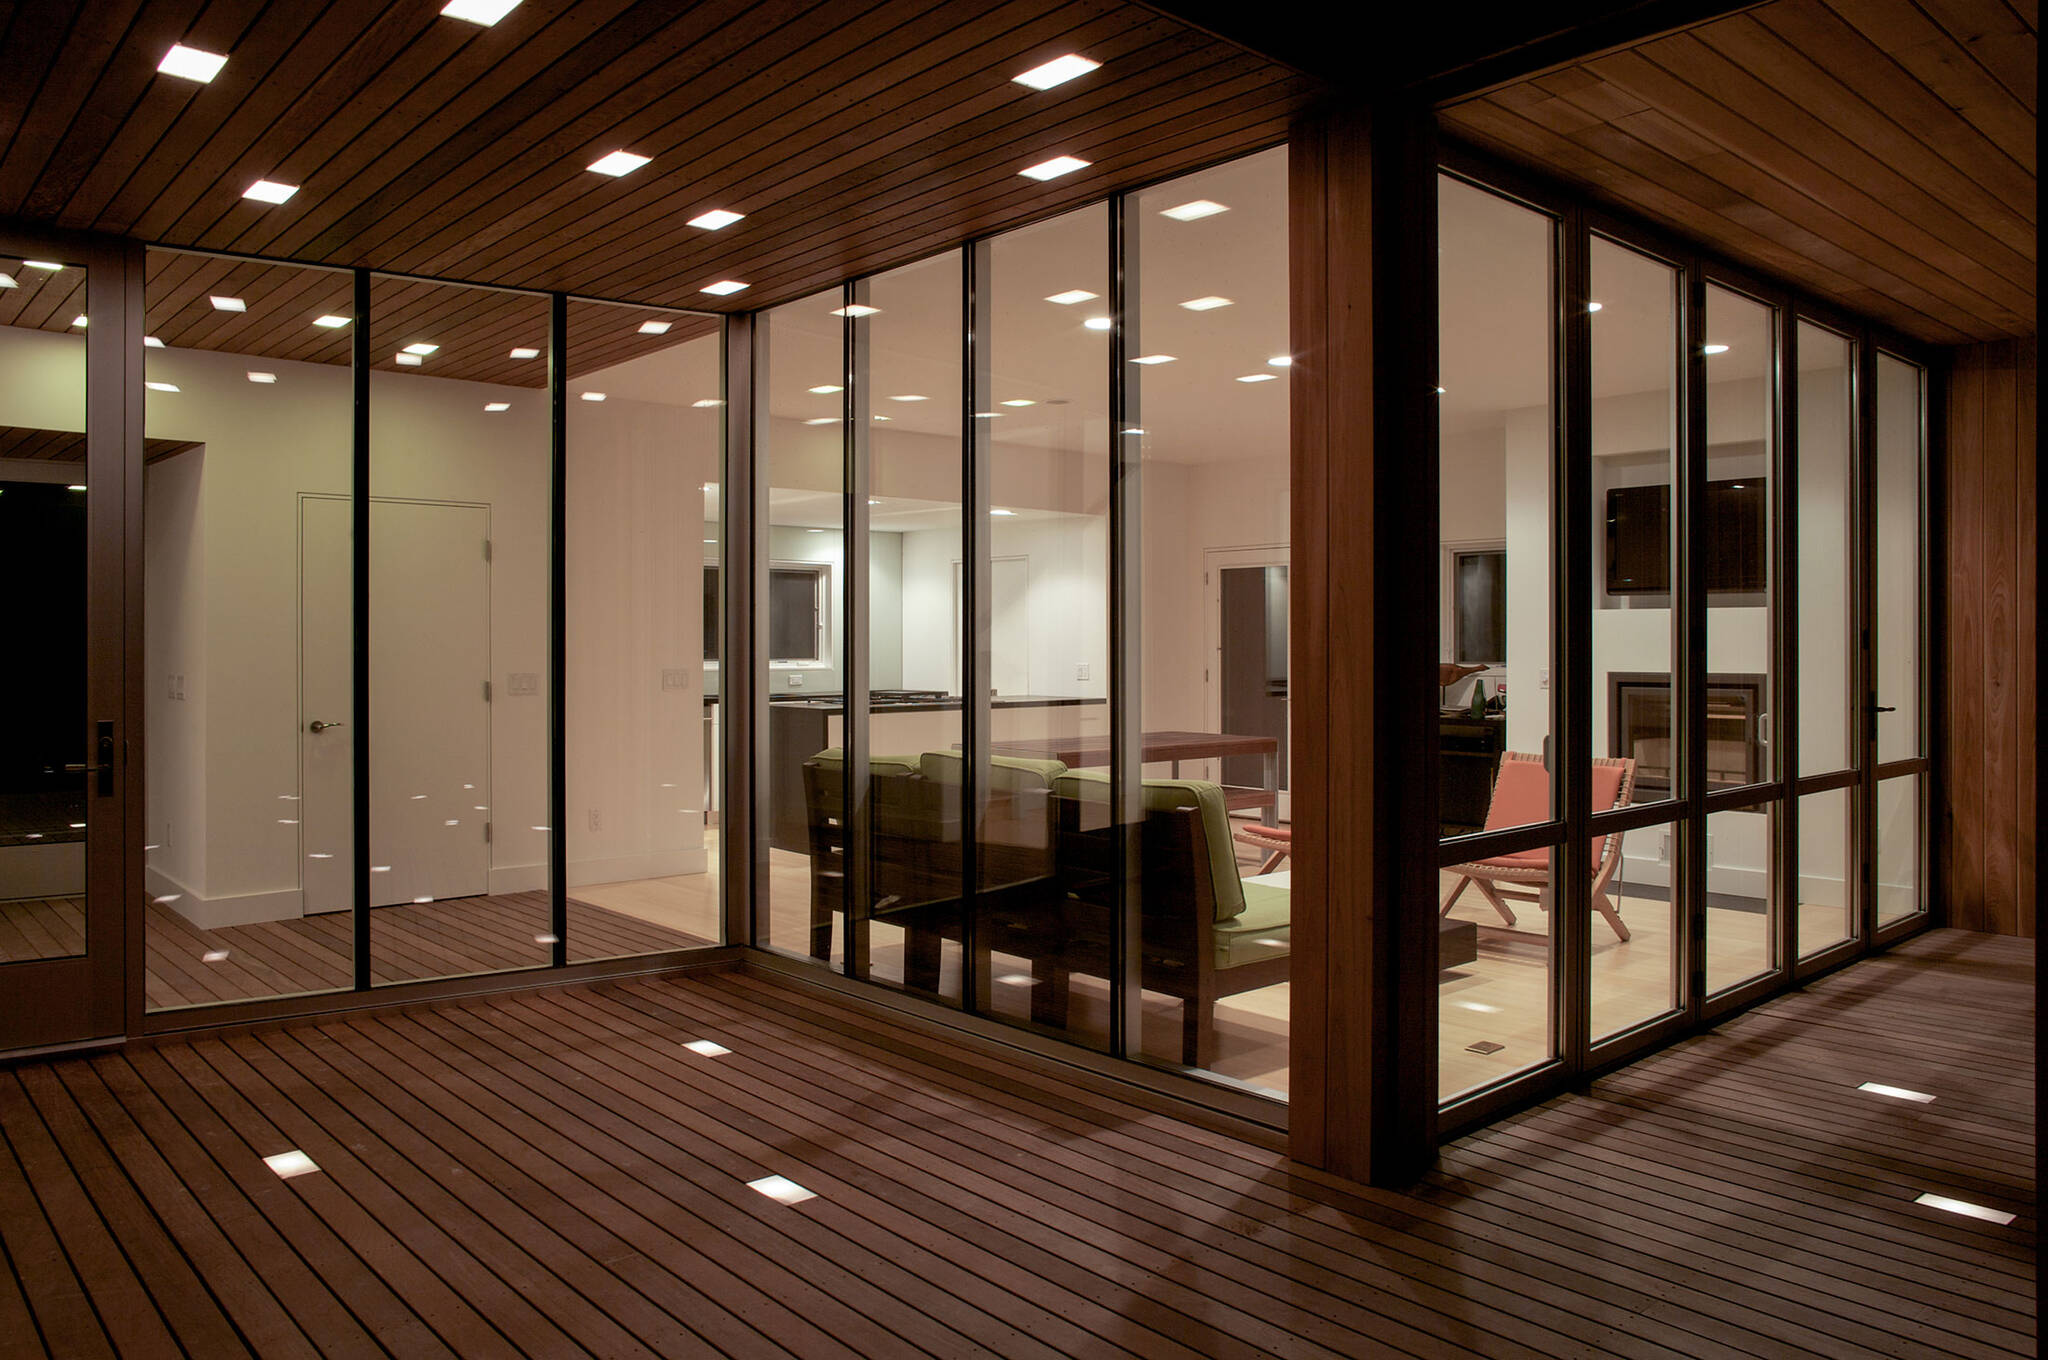 Night view of the wooden deck and framed windows of the sustainable lake house project in Omena, Michigan designed by the architecture studio Danny Forster & Architecture